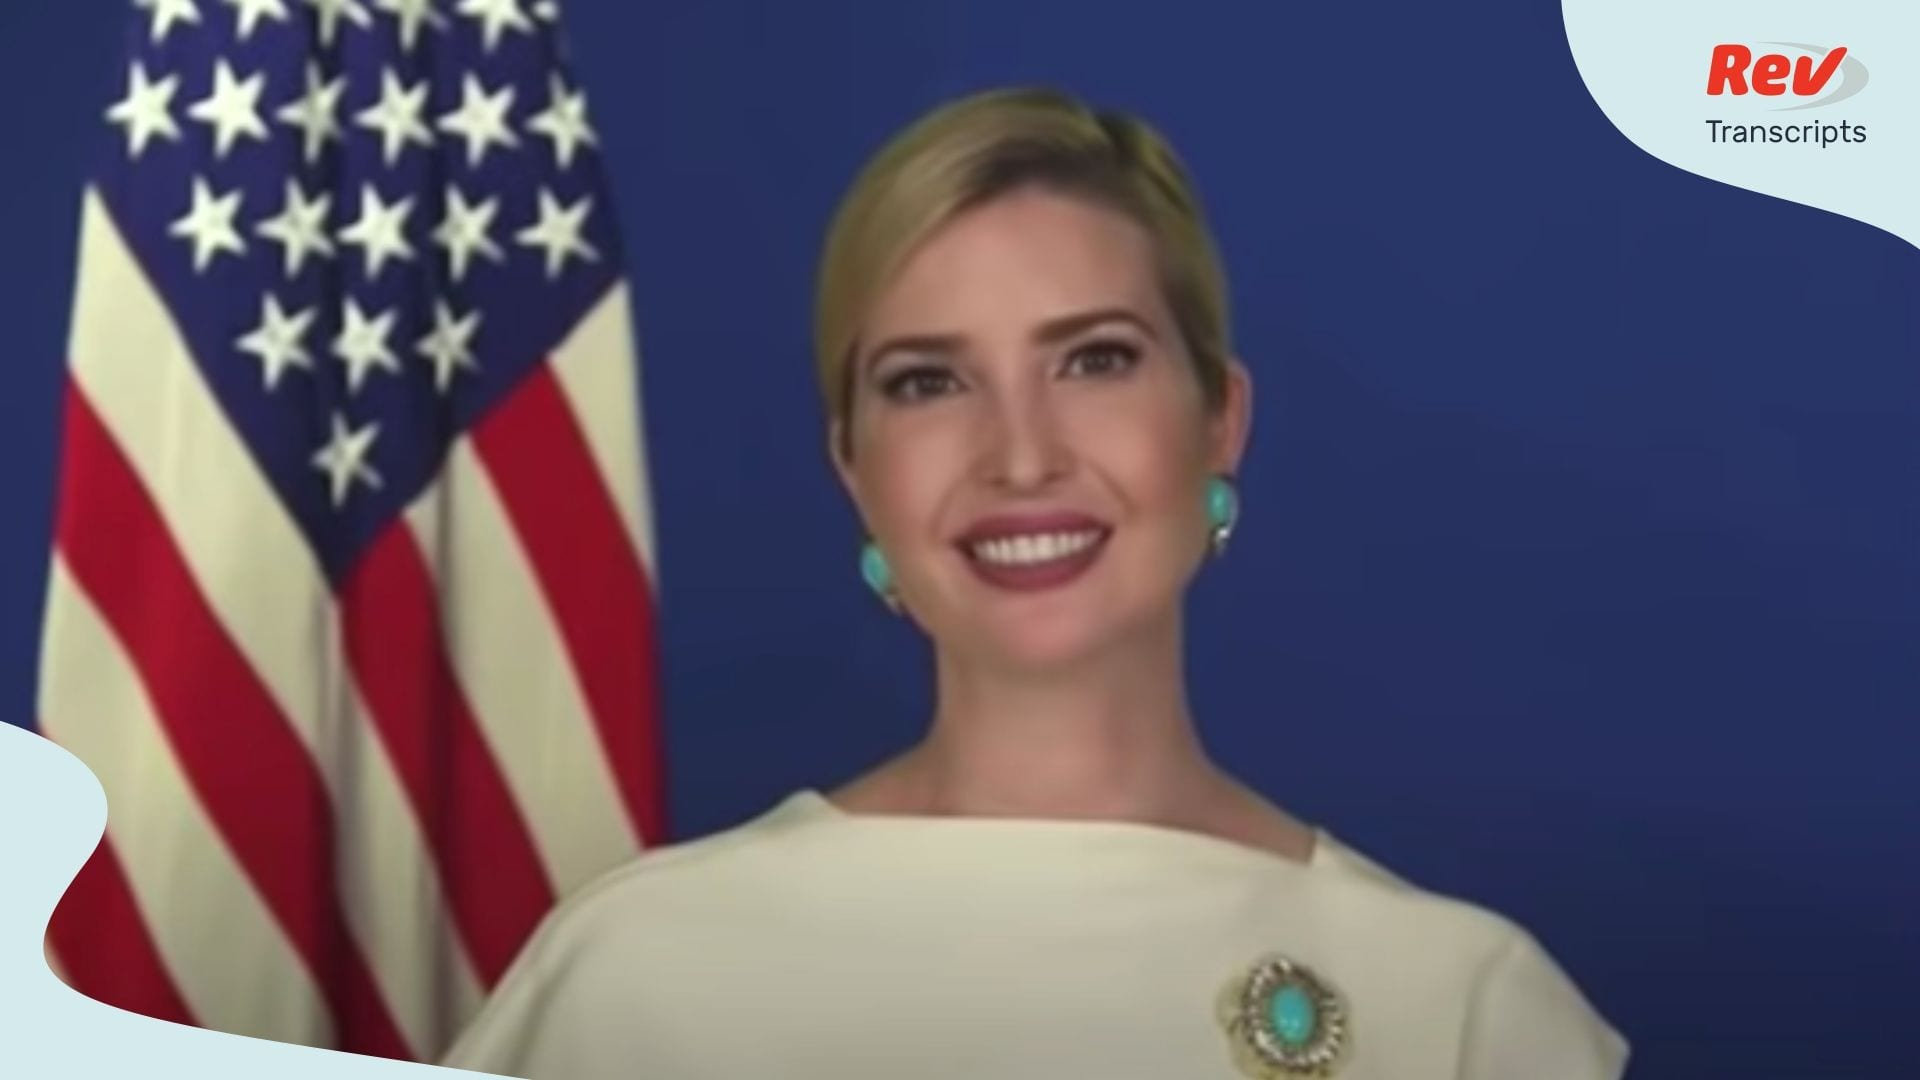 Ivanka Trump Commencement Speech Transcript 2020